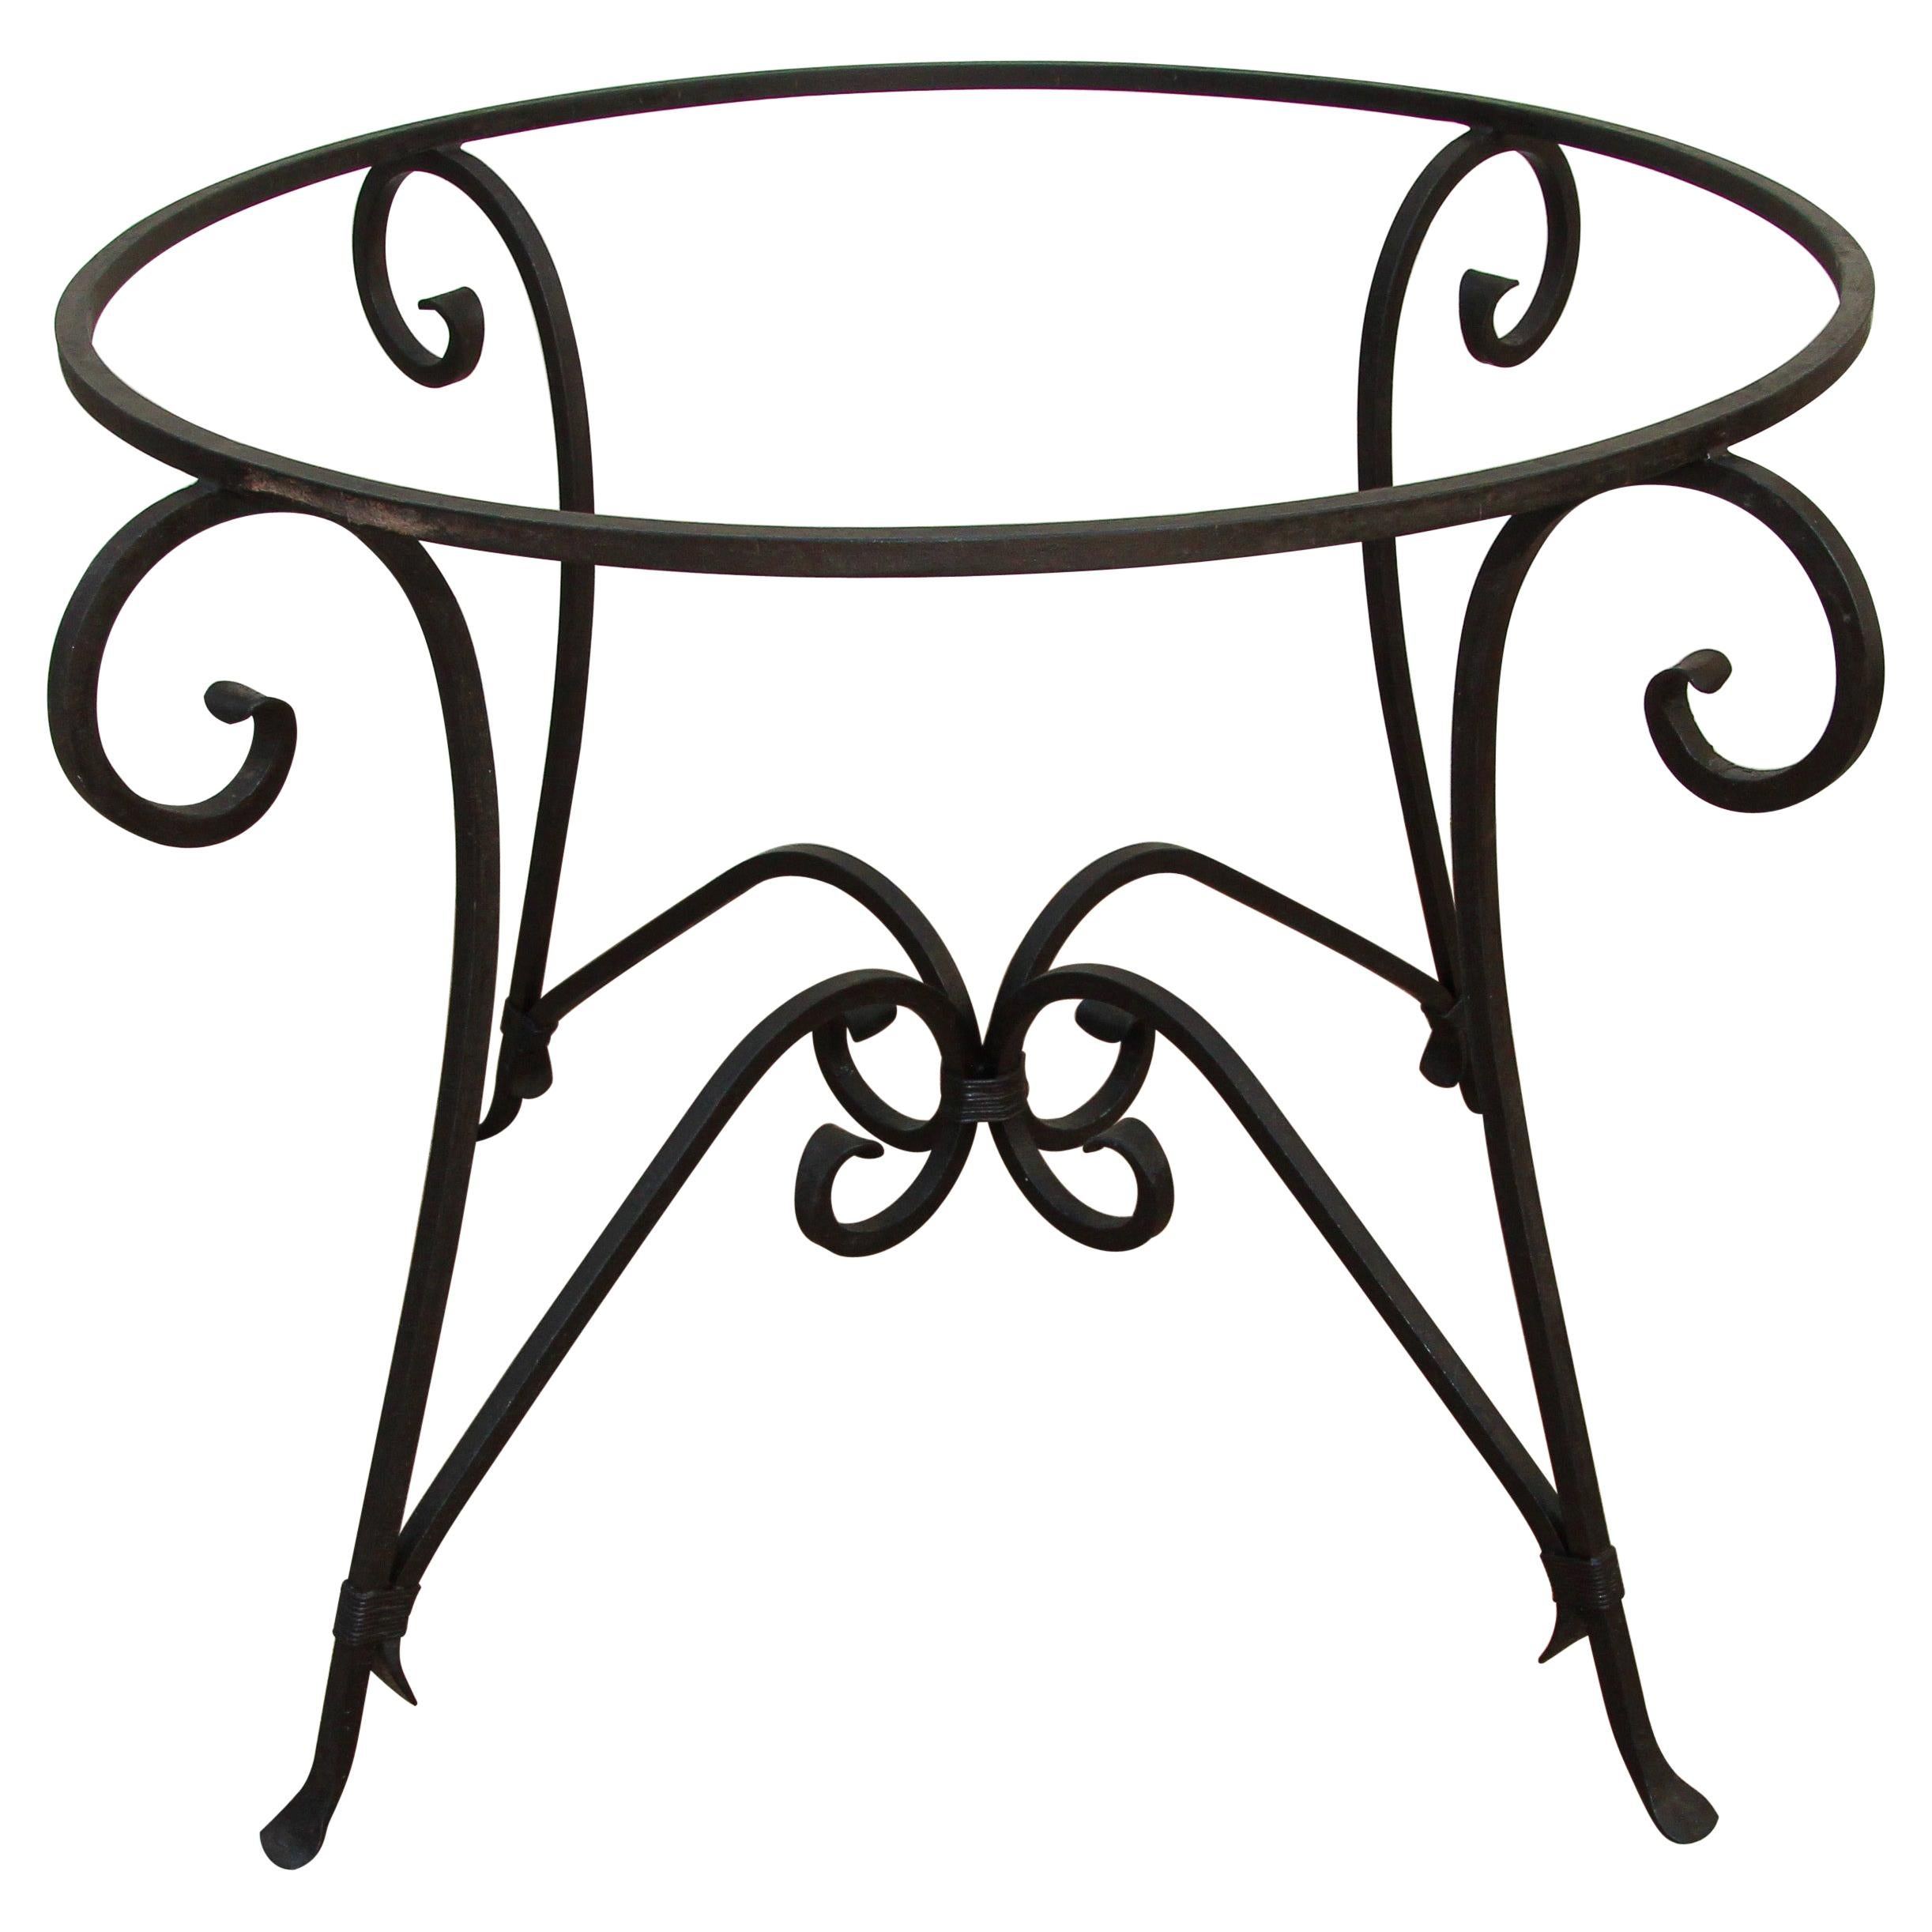 Spanish Wrought Iron Dining Table Base Indoor or Outdoor